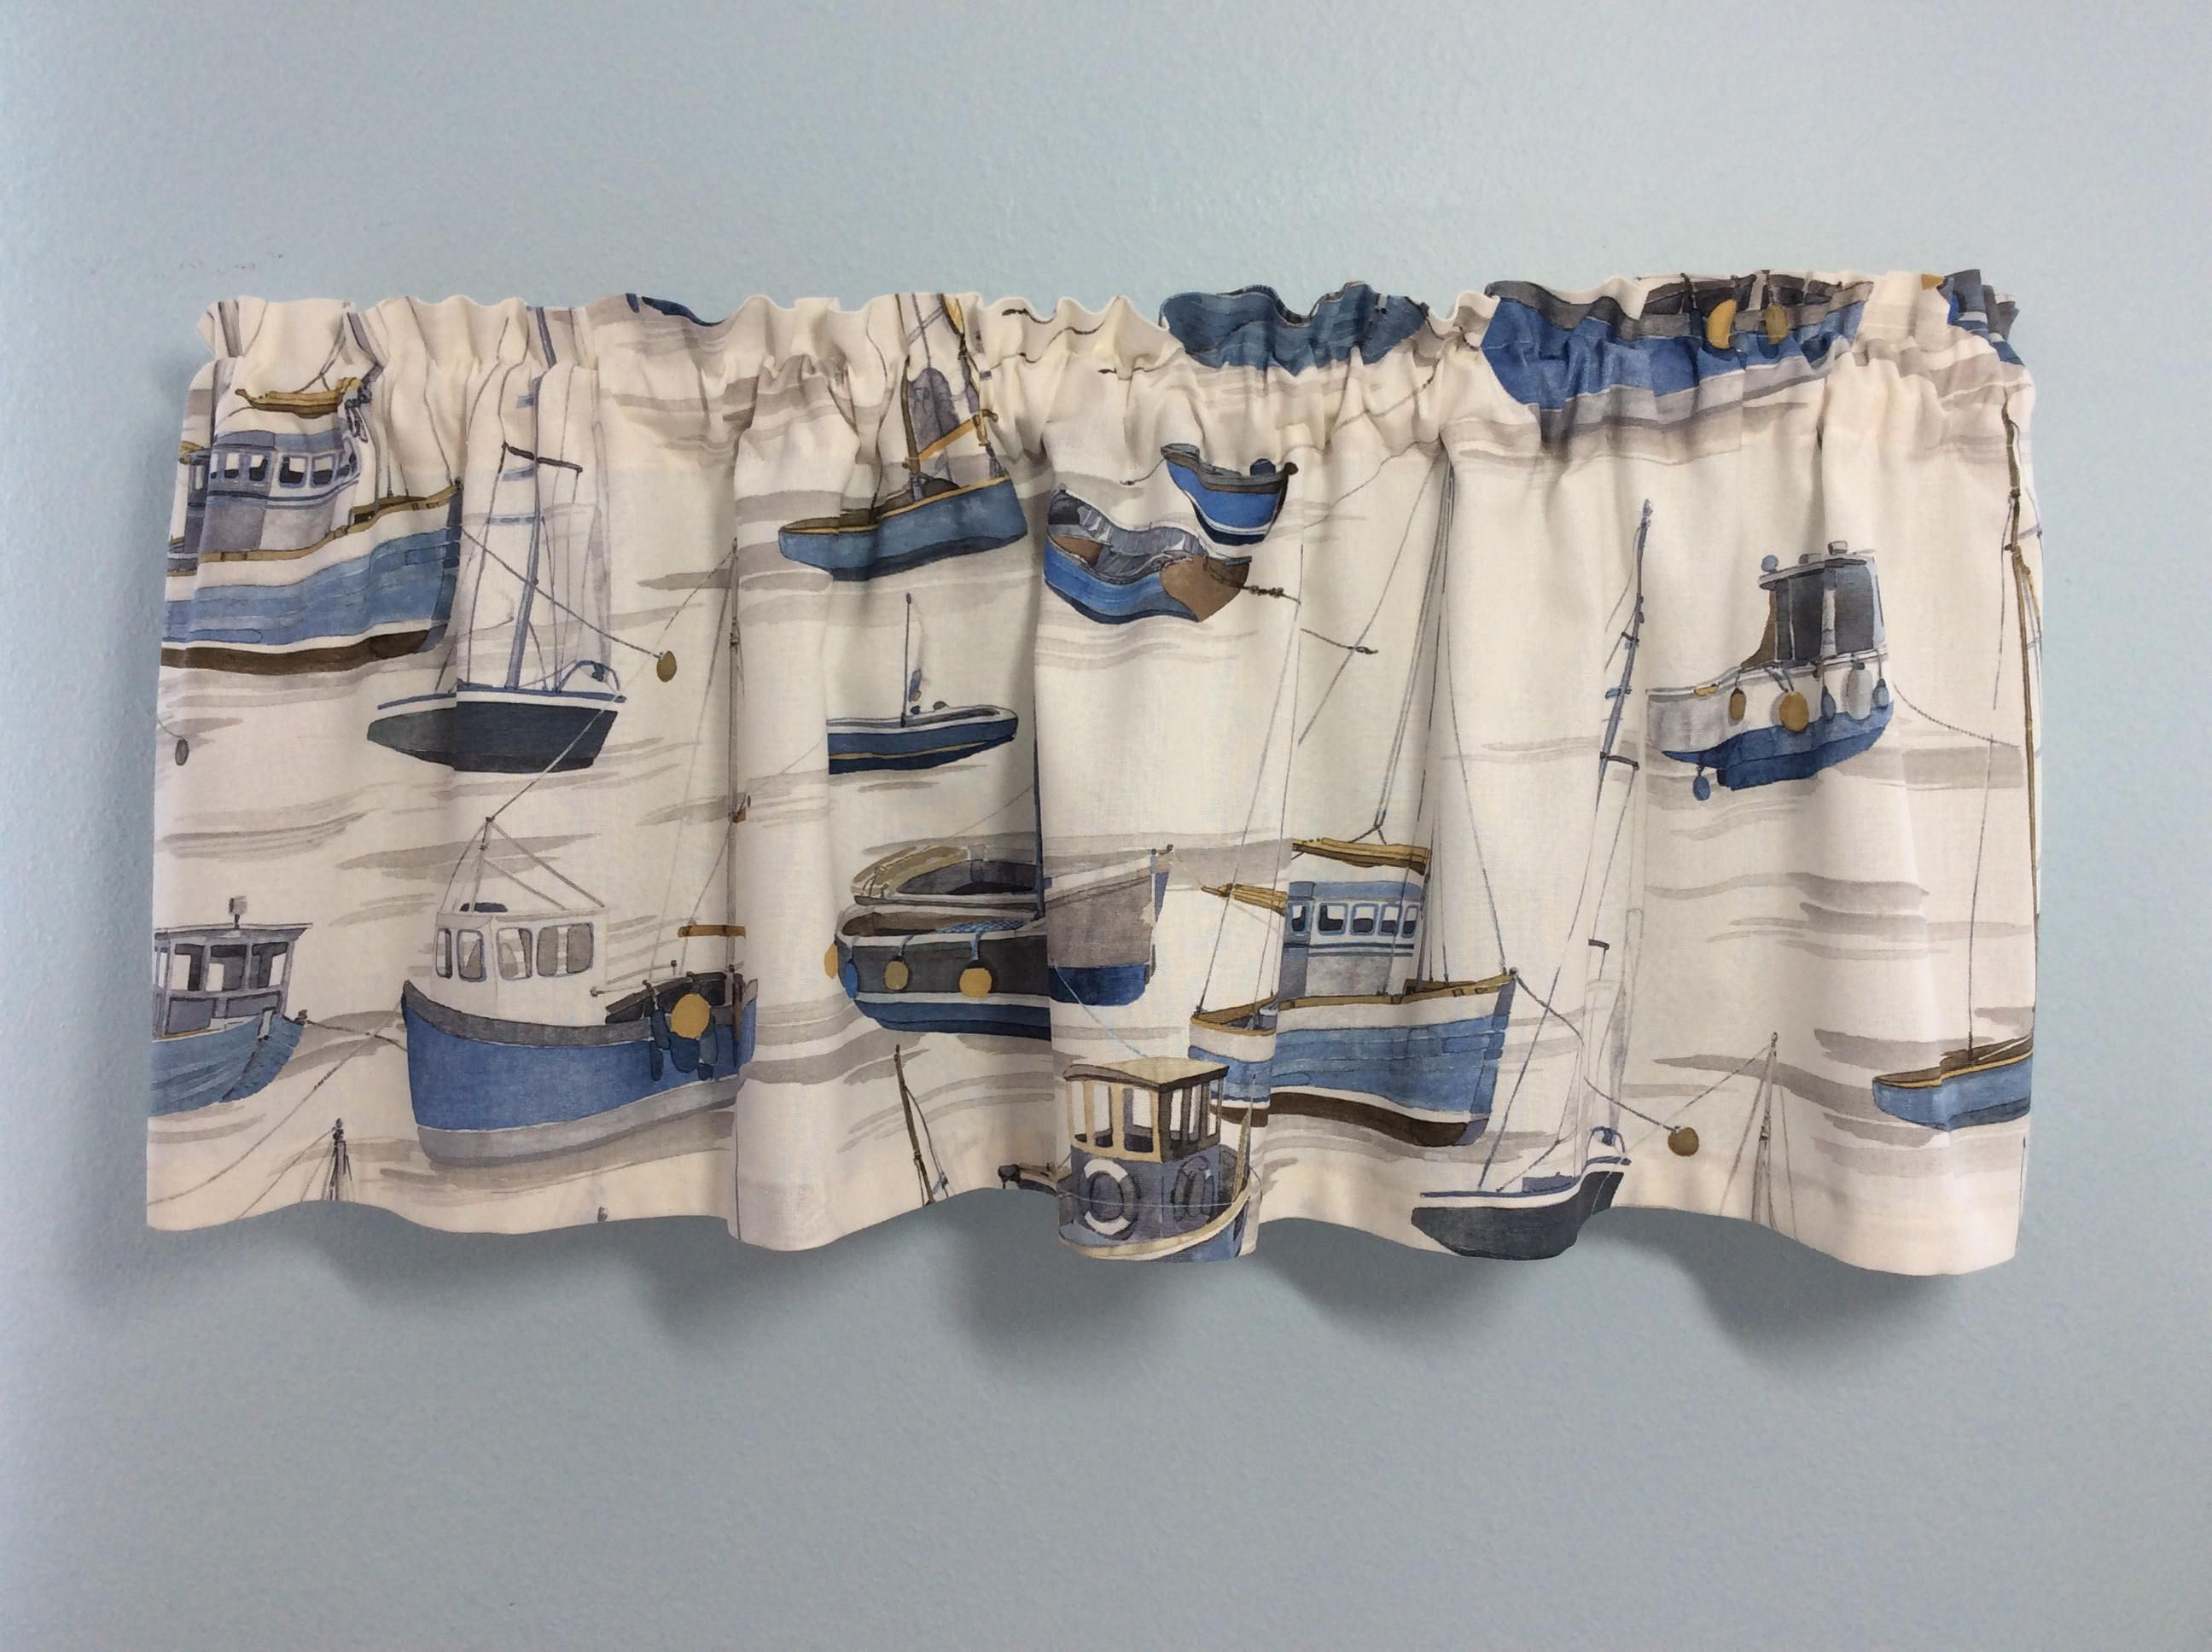 Nautical Valance With Boats Design